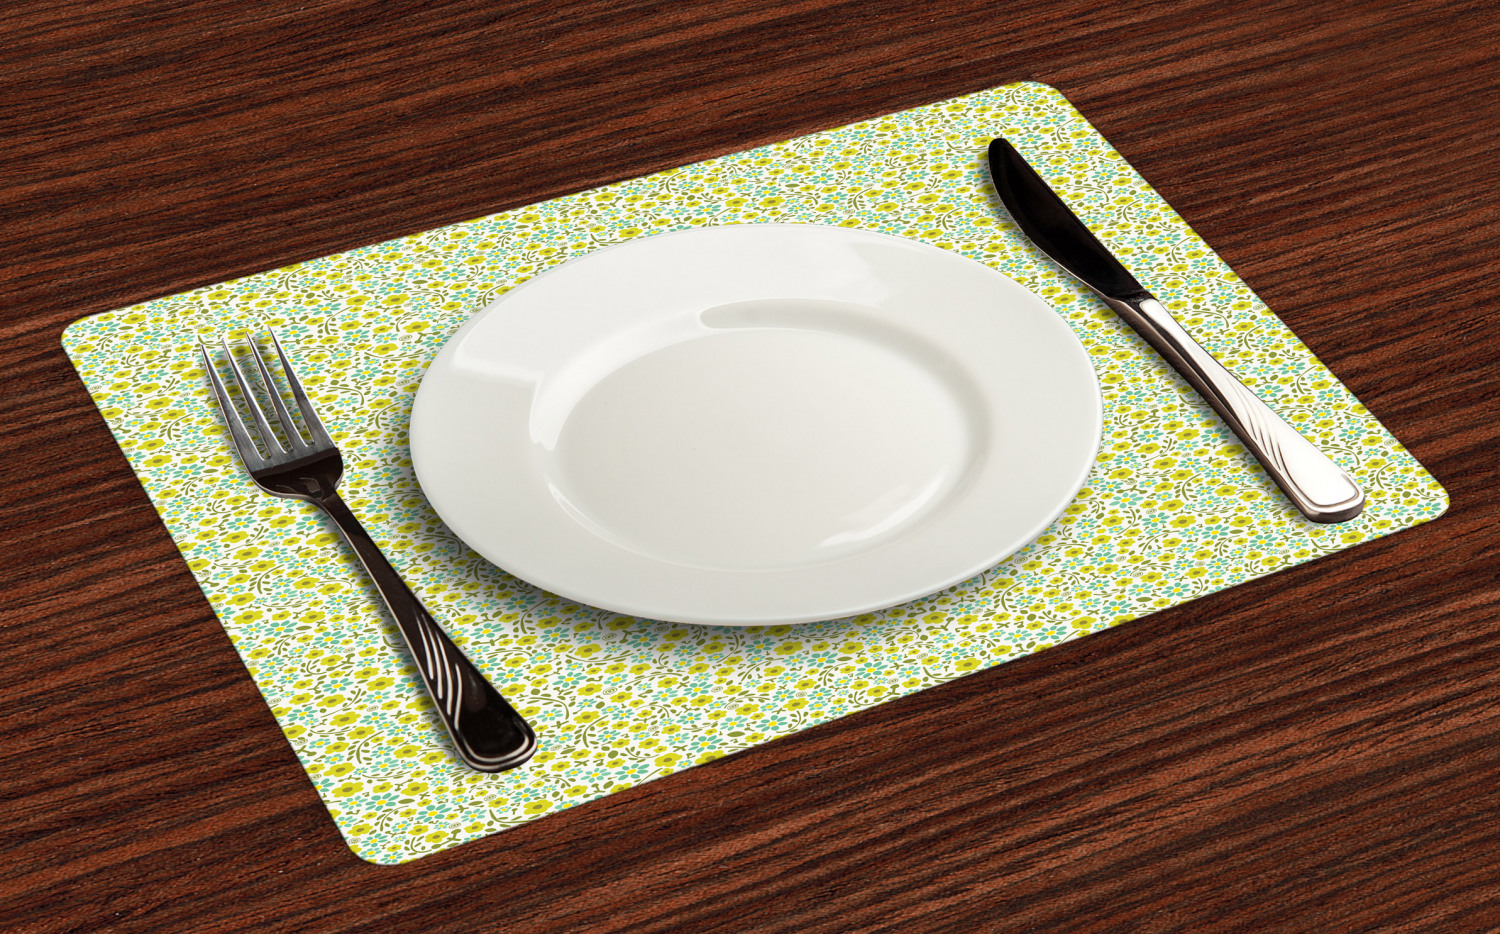 Ambesonne-Flower-Pattern-Placemat-Set-of-4-Fabric-Place-Mats-for-Table-Decor thumbnail 153